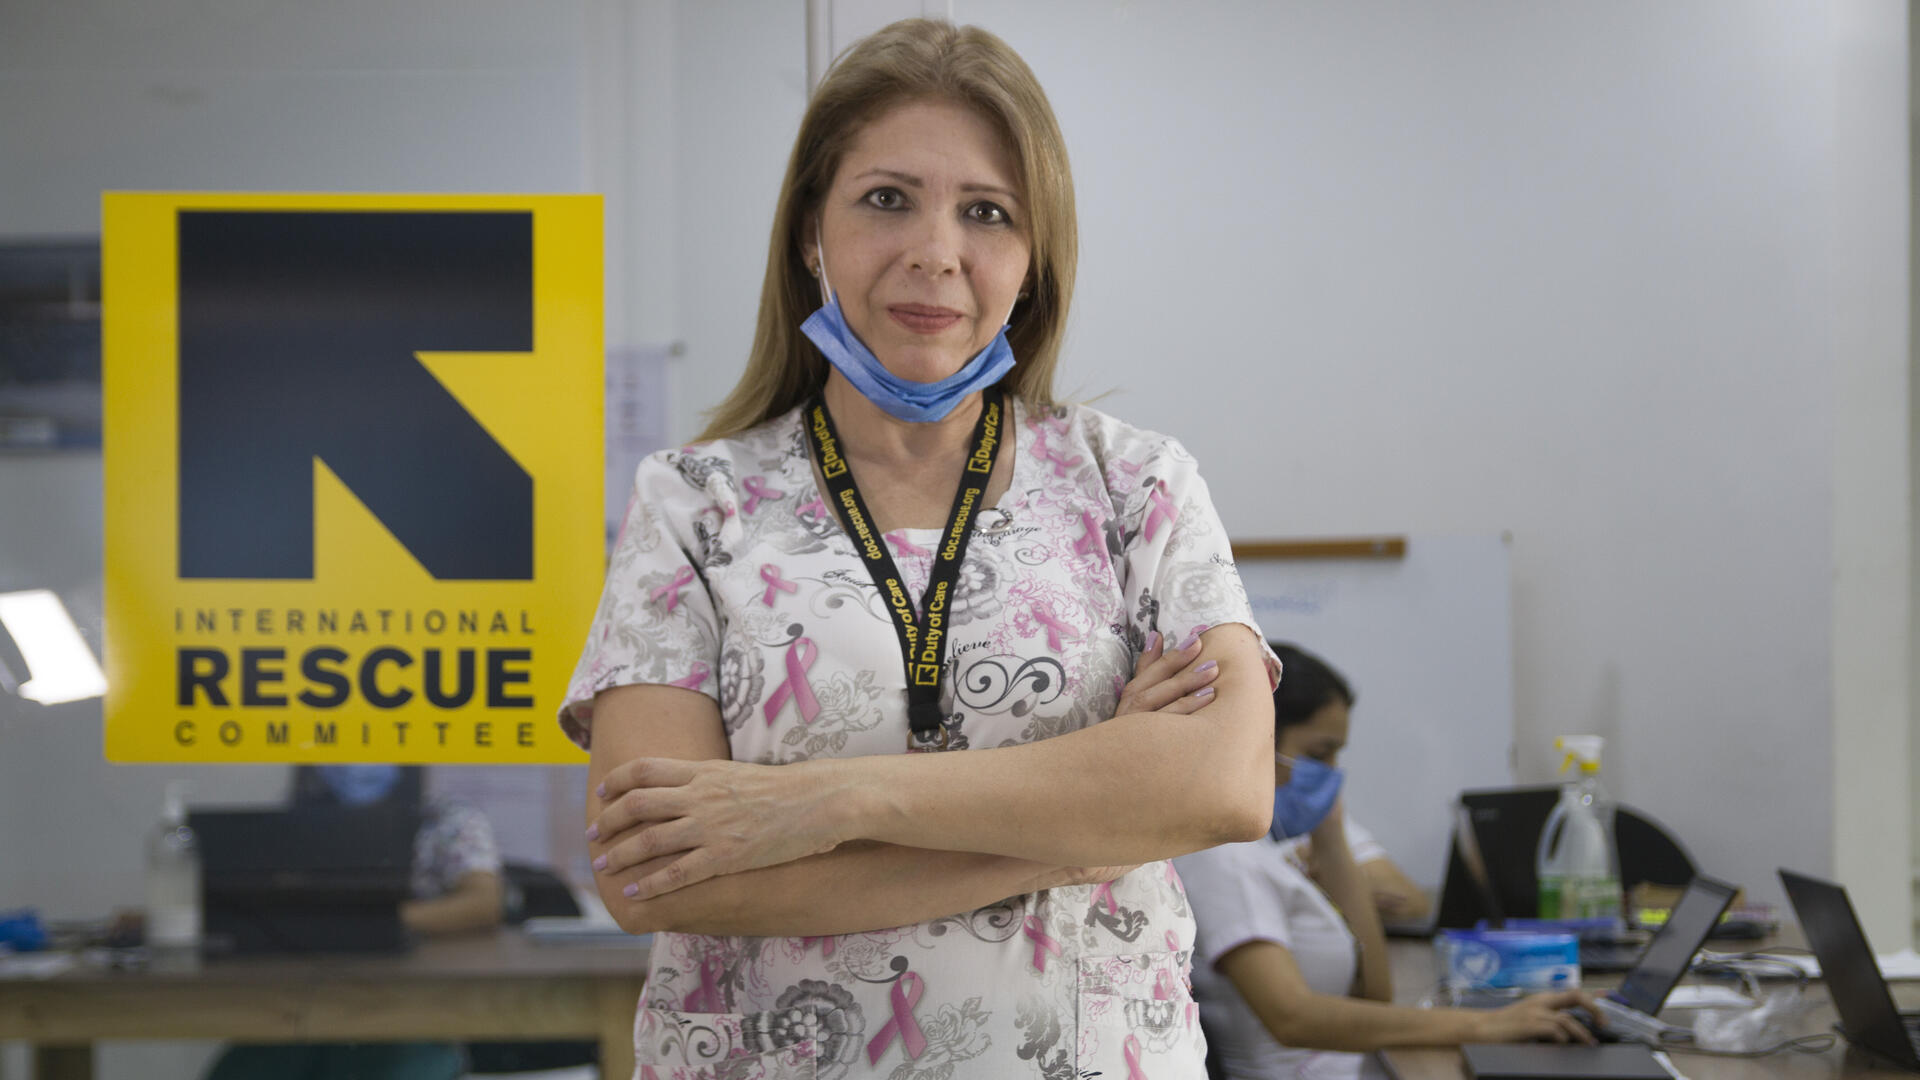 Dr. Edna Patricia Gomez stands in scrubs with her arms crossed. She has mask at her chin and there is an IRC logo behind her.